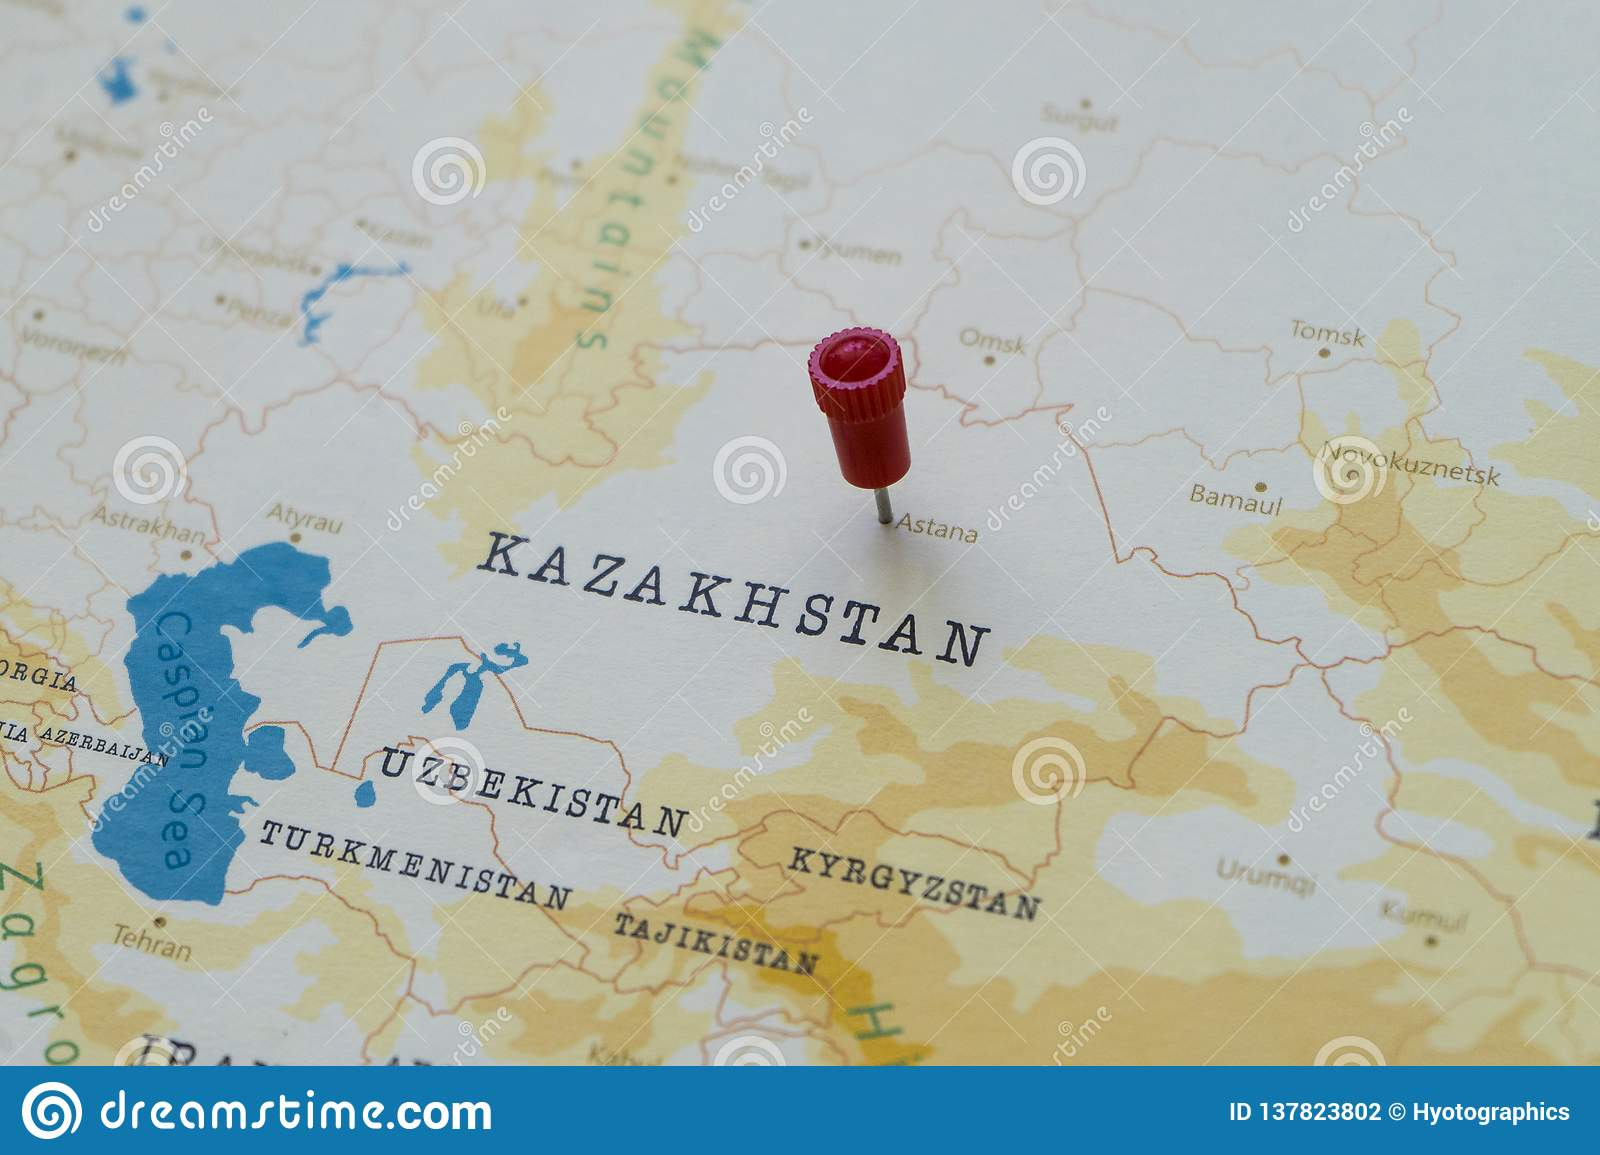 A Pin On Astana Kazakhstan In The World Map Stock Photo Image Of